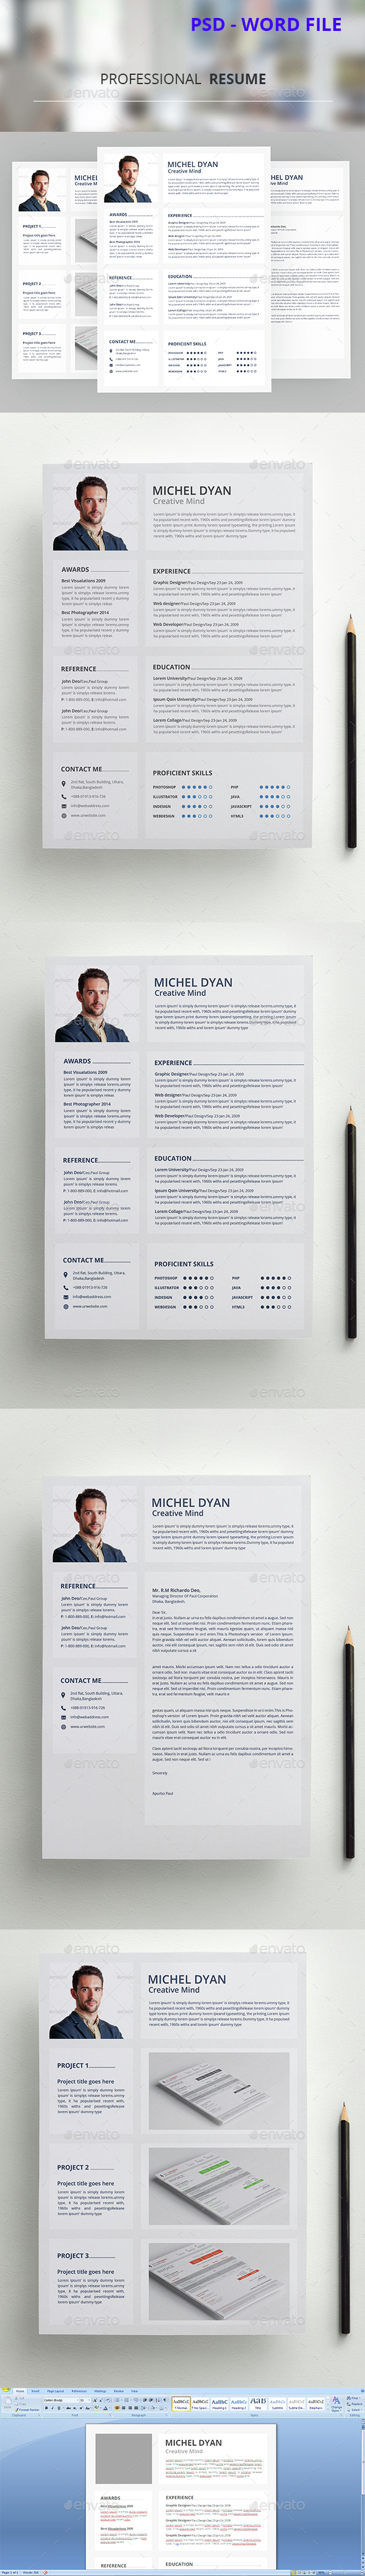 Professional Resume Template PSD. Download here: http://graphicriver ...